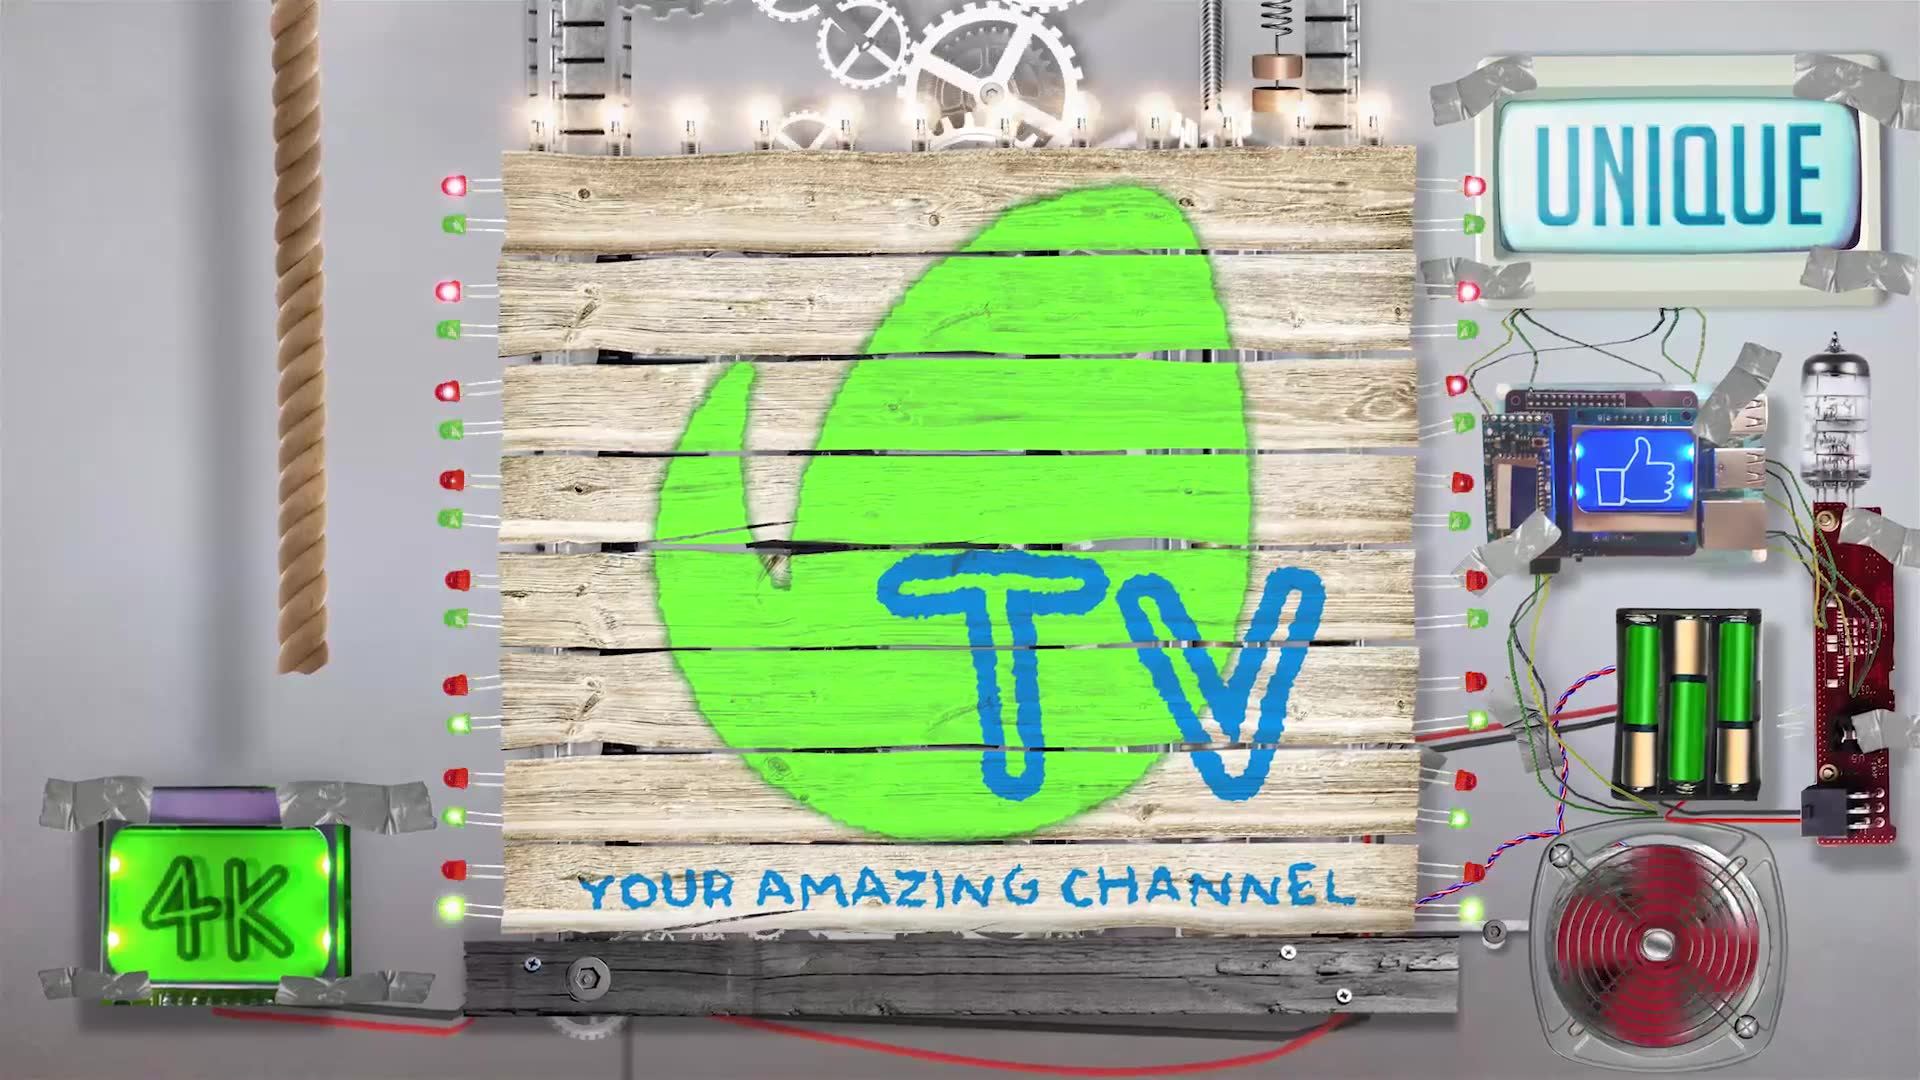 Channel Show Technology - Download Videohive 23030508